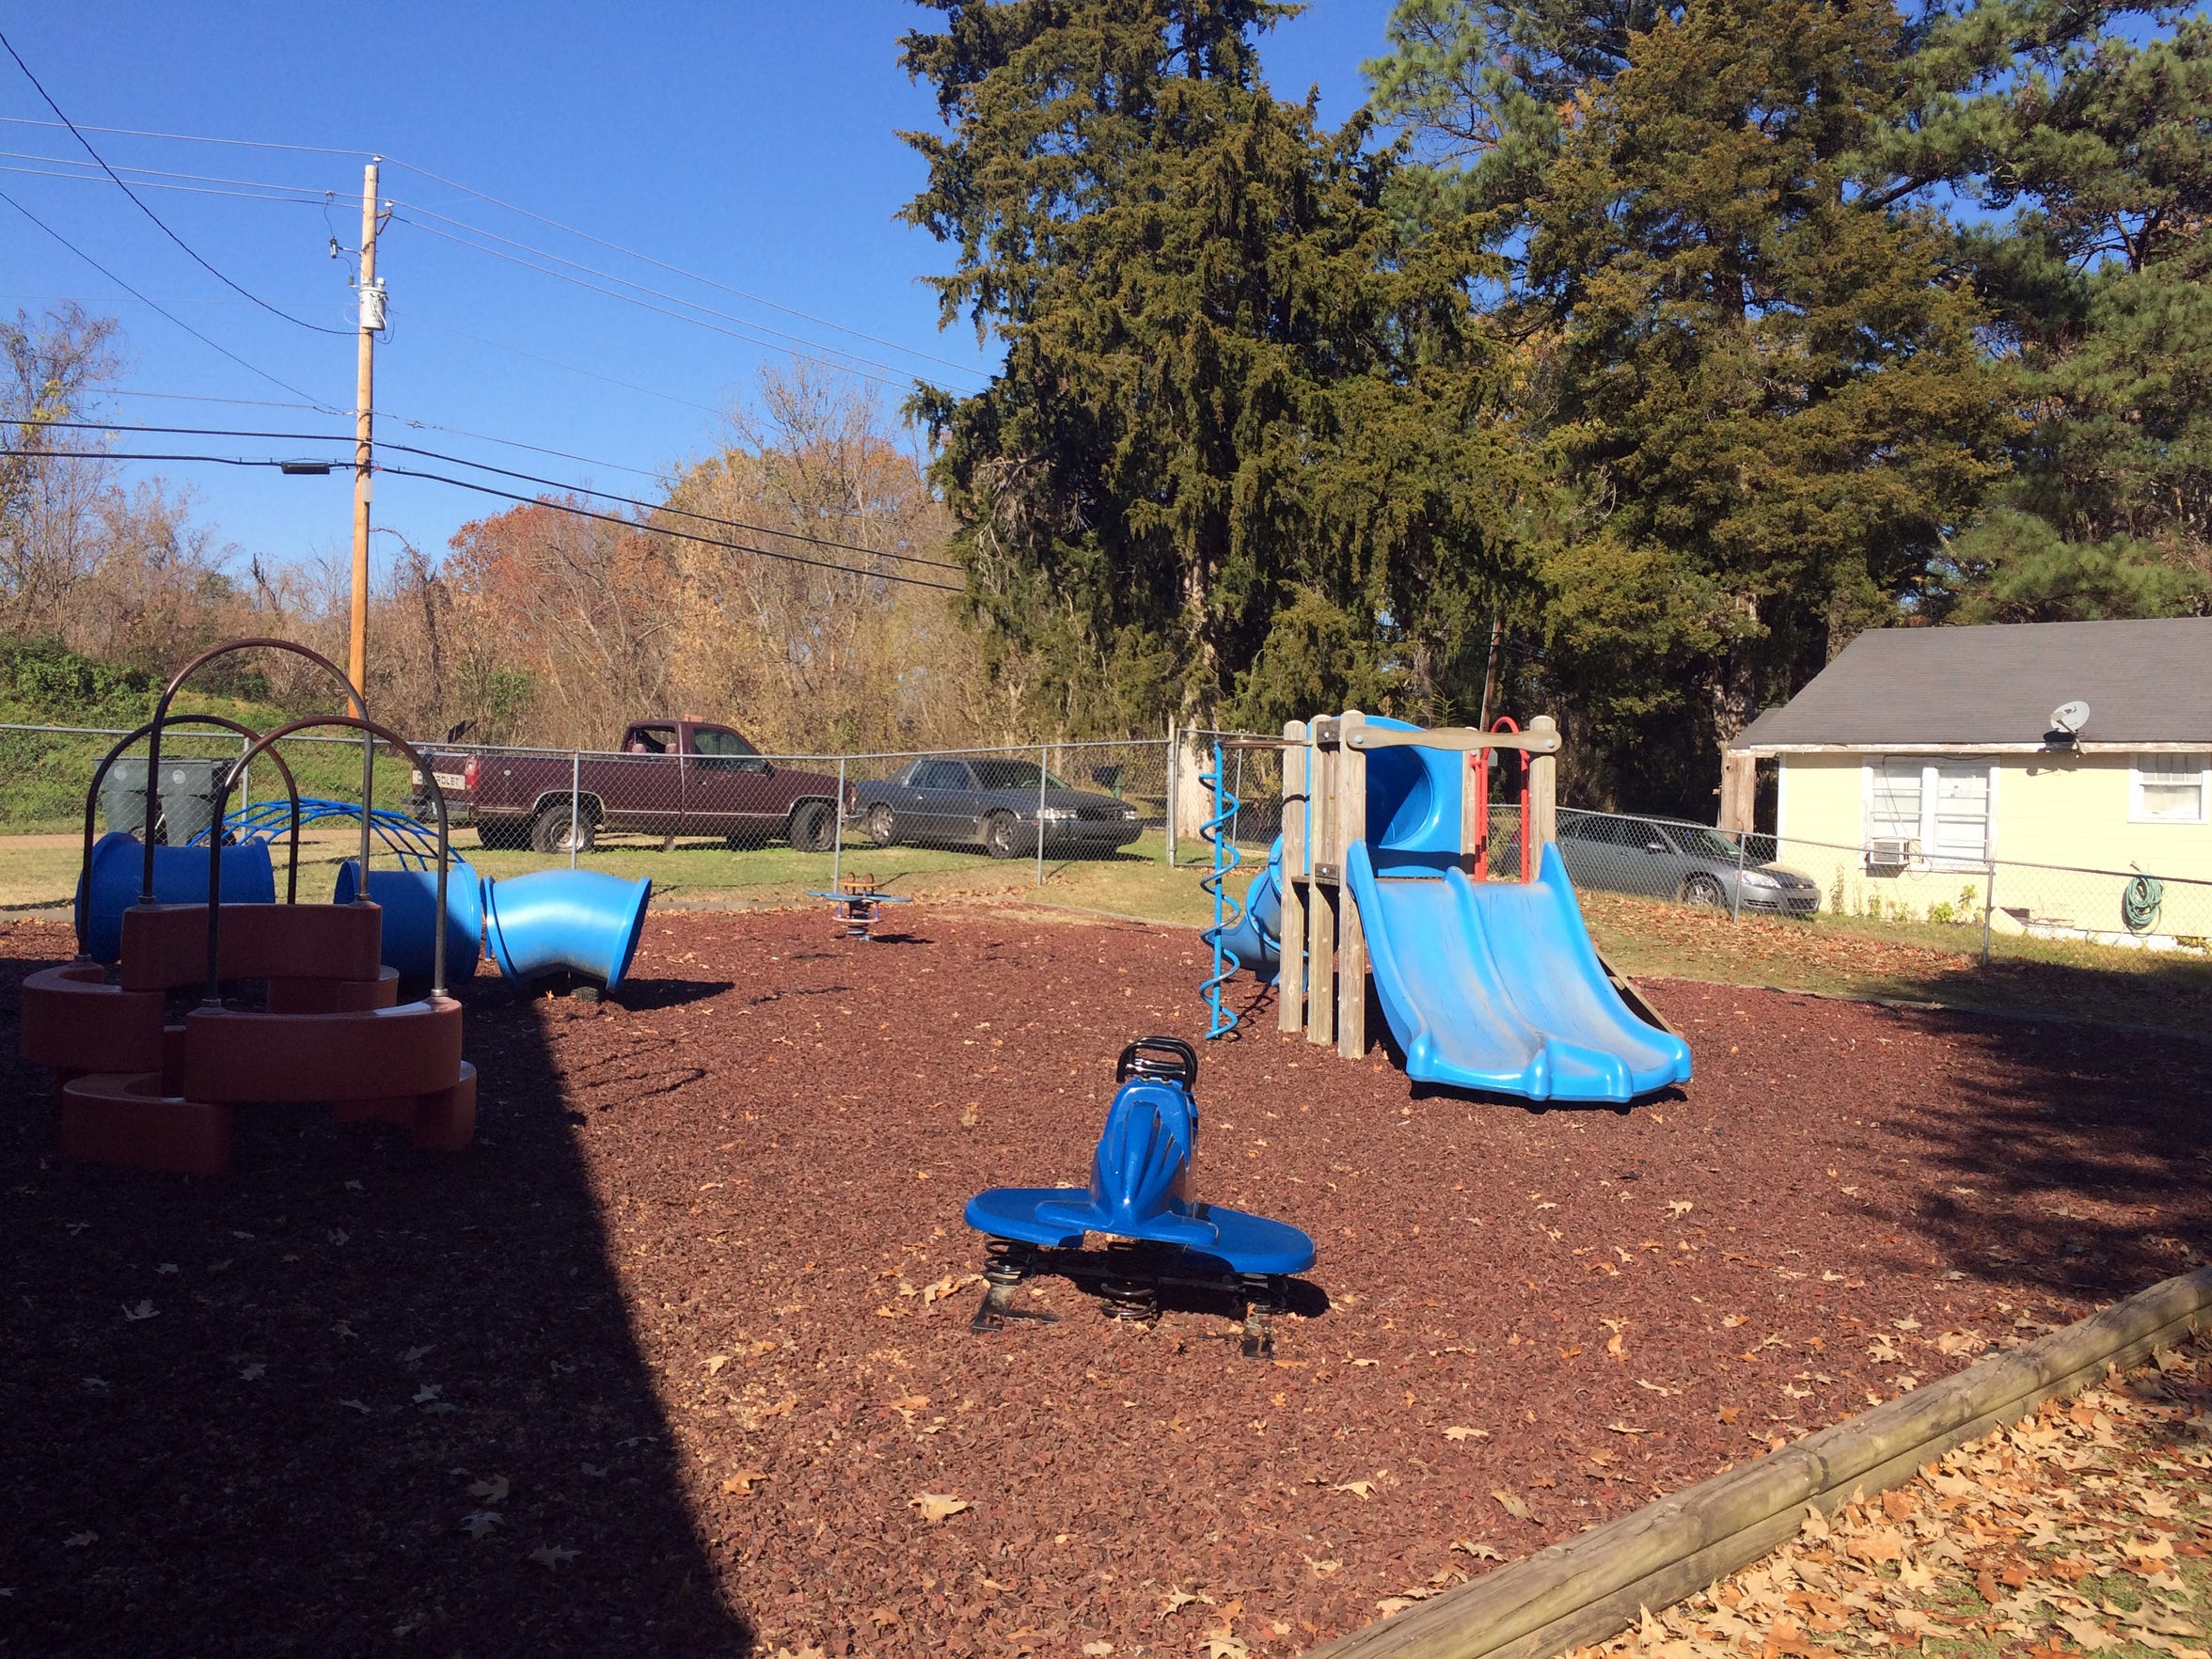 Child care center owners say playgrounds, like this one at a daycare in Vicksburg, can cost thousands of dollars.